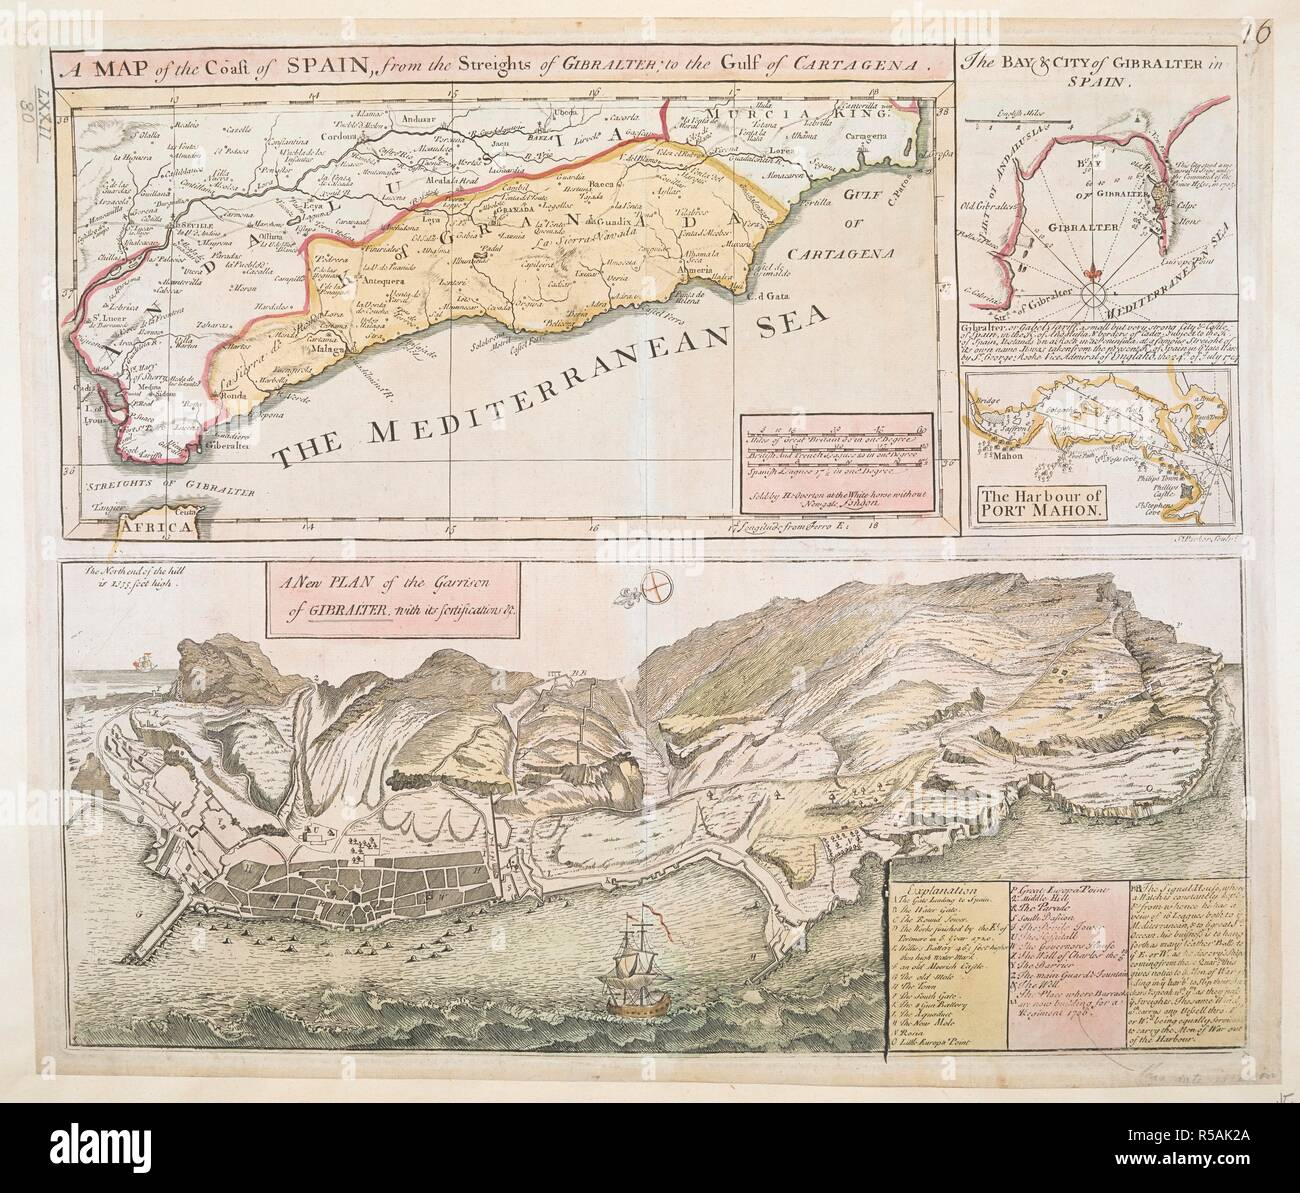 Map Of Coastal Spain.A Map Of The Coast Of Spain And Two Insets With Soundings The Bay